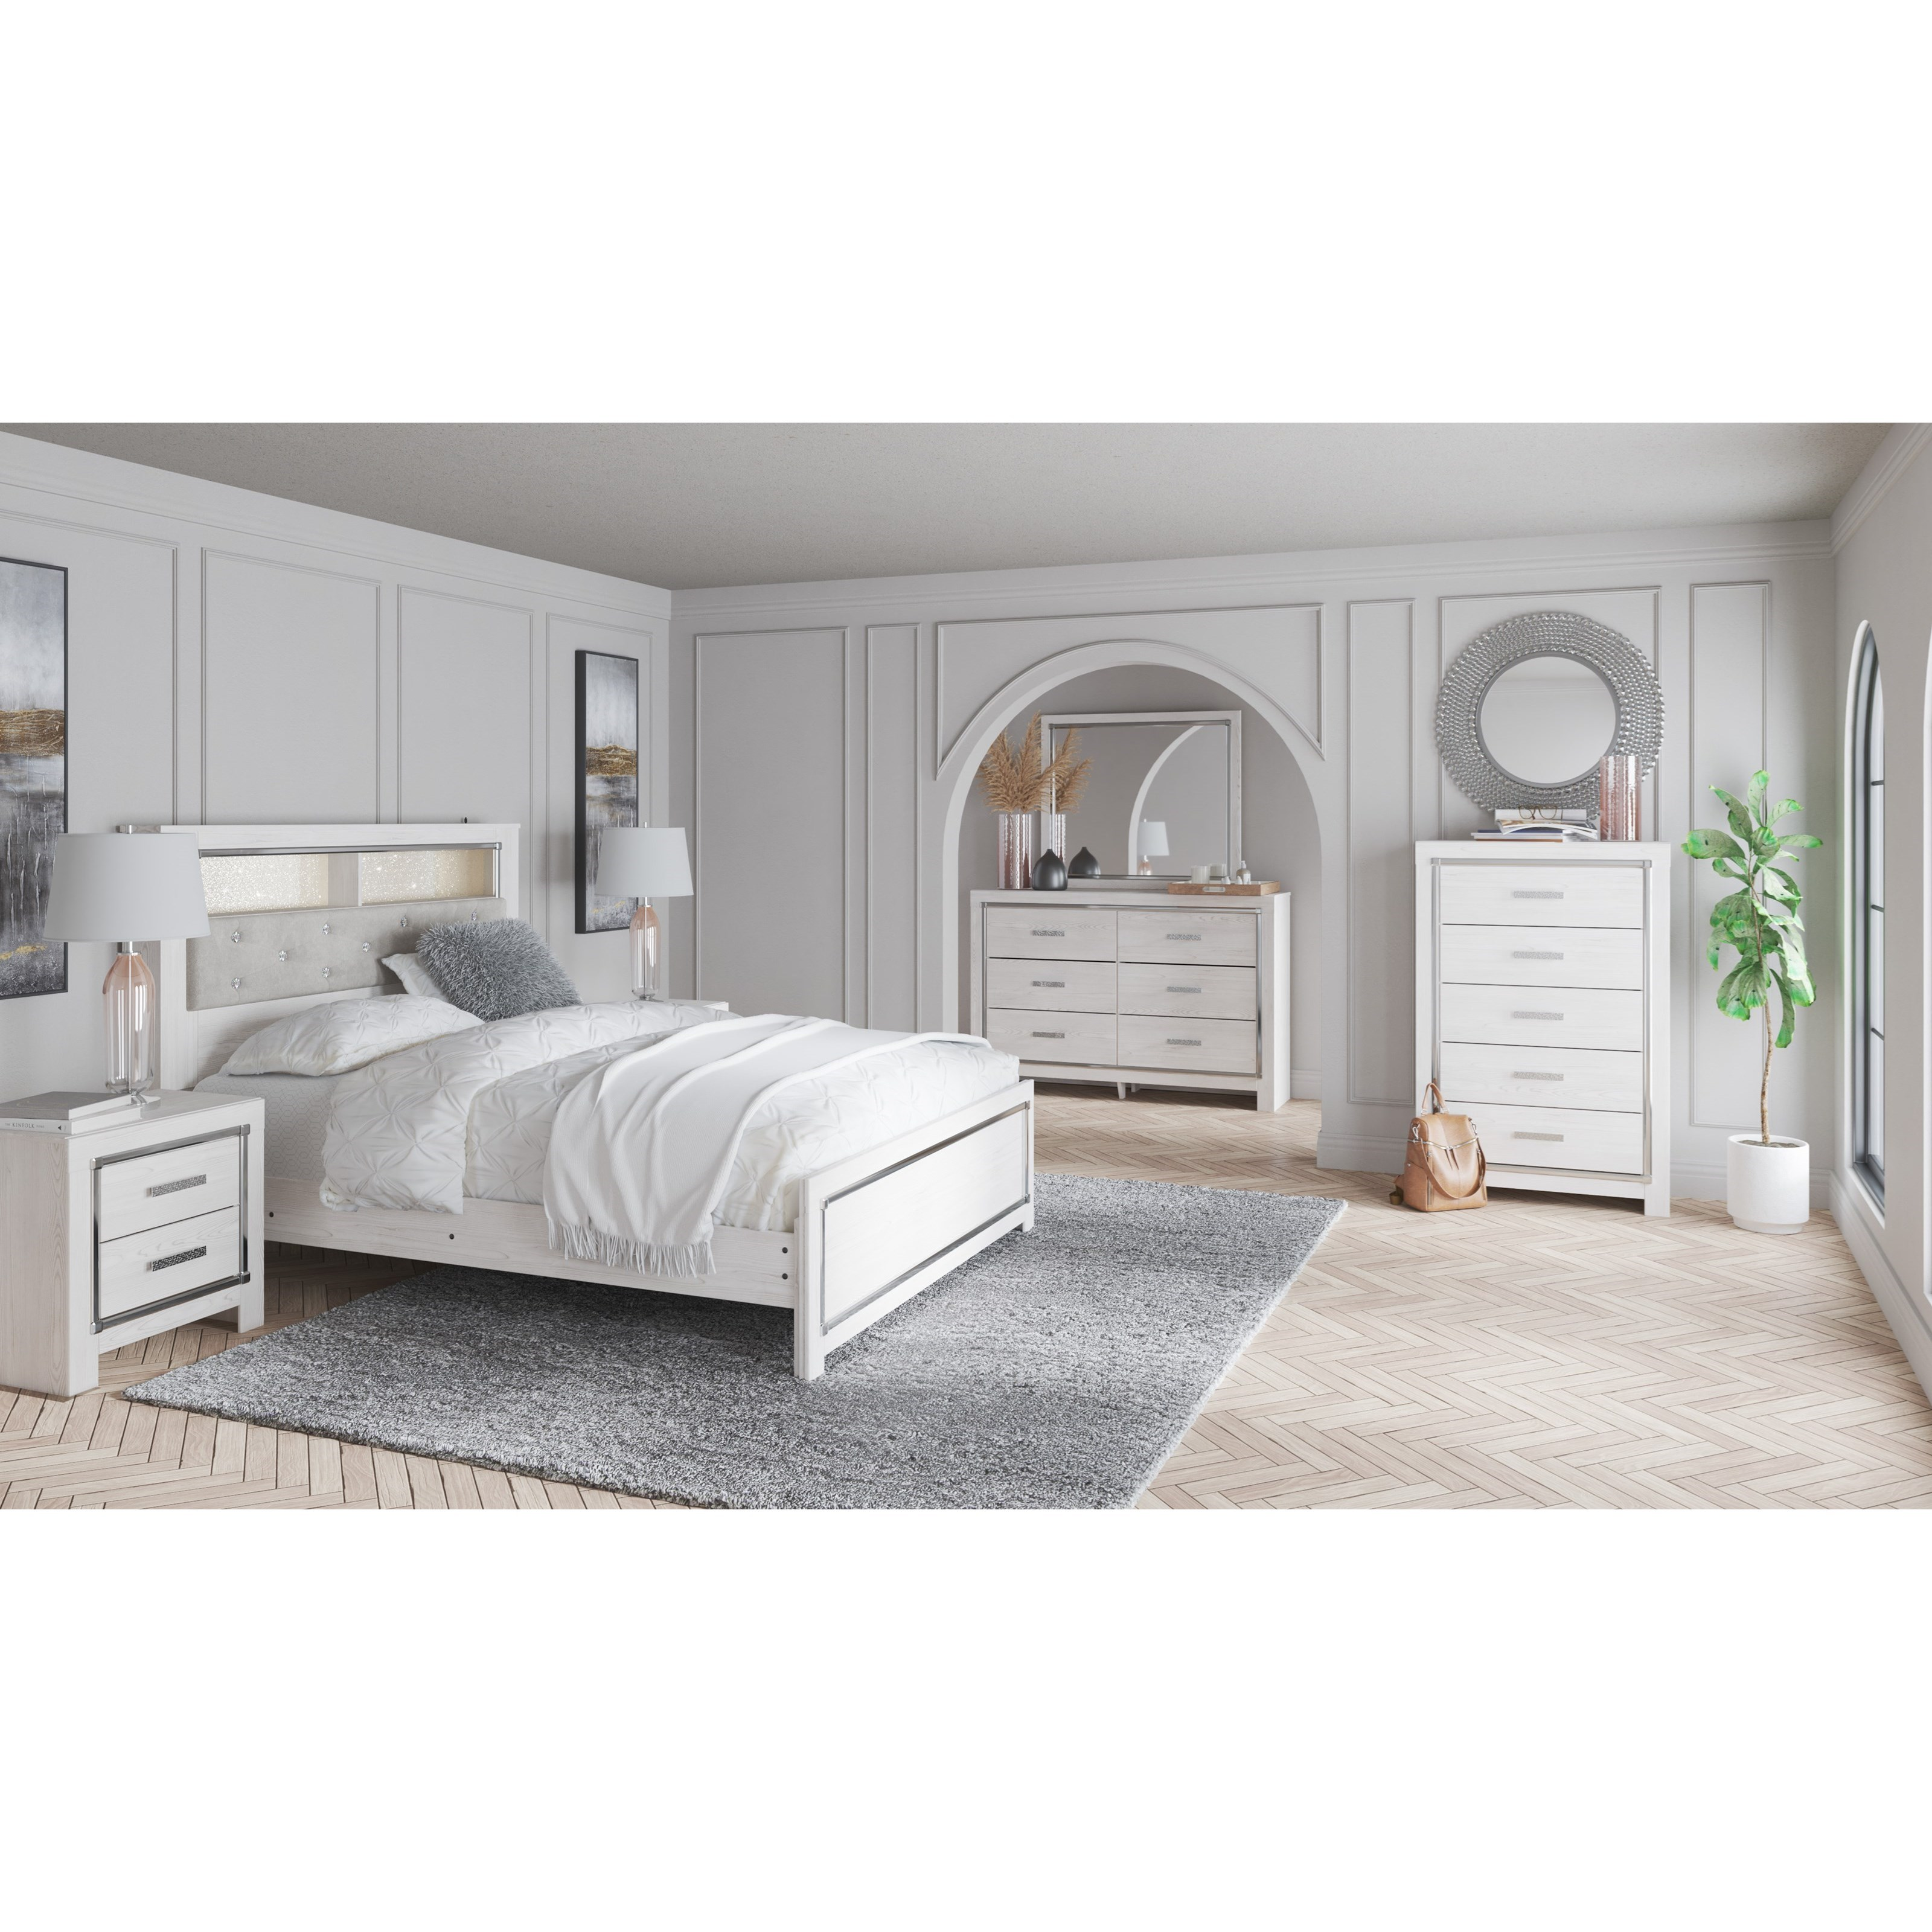 Altyra Twin Bedroom Group by Signature Design by Ashley at Zak's Warehouse Clearance Center